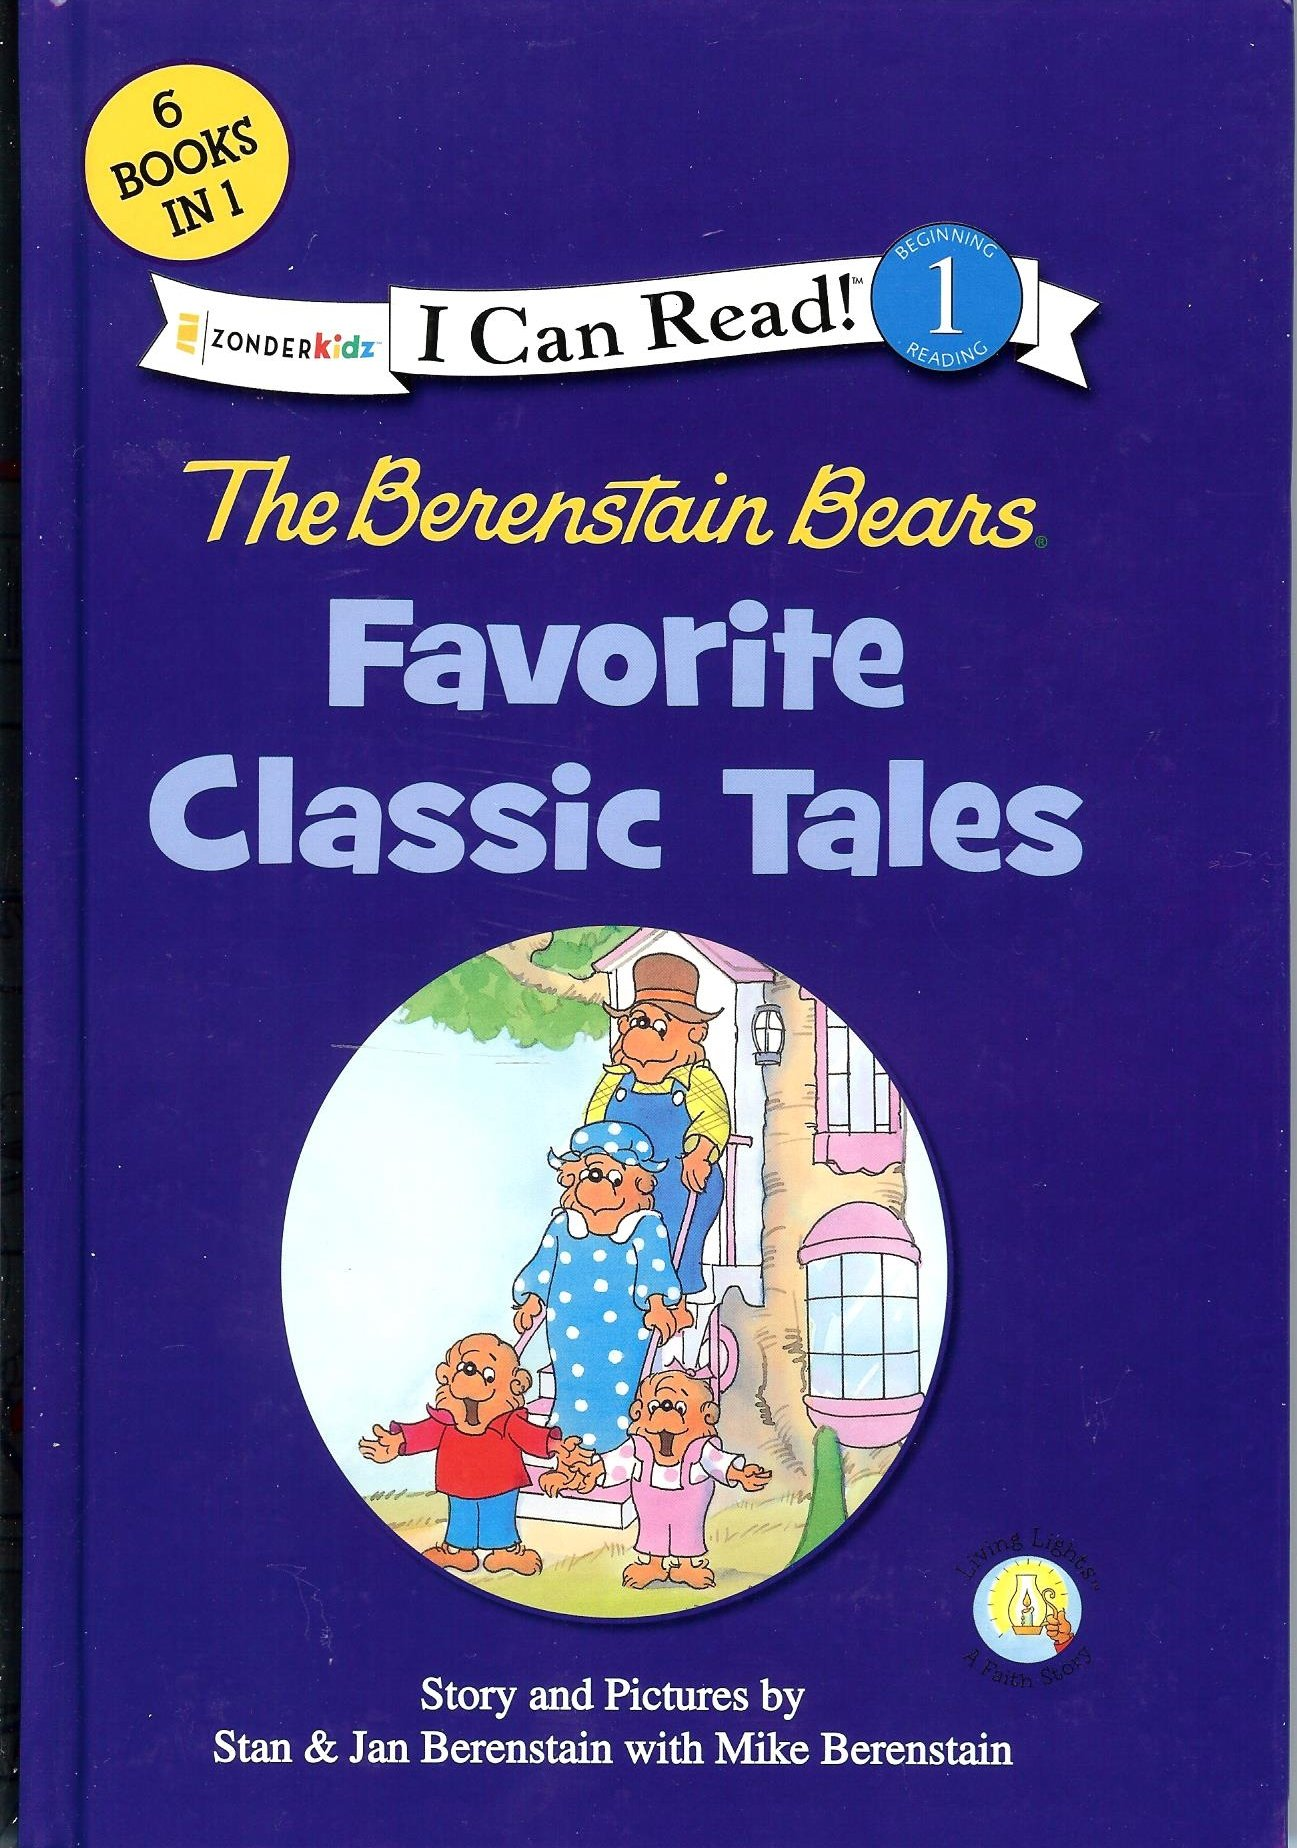 Download The Berenstain Bears Favorite Classic Tales - I Can Read - 6 Books in 1 - ZonderKidz pdf epub